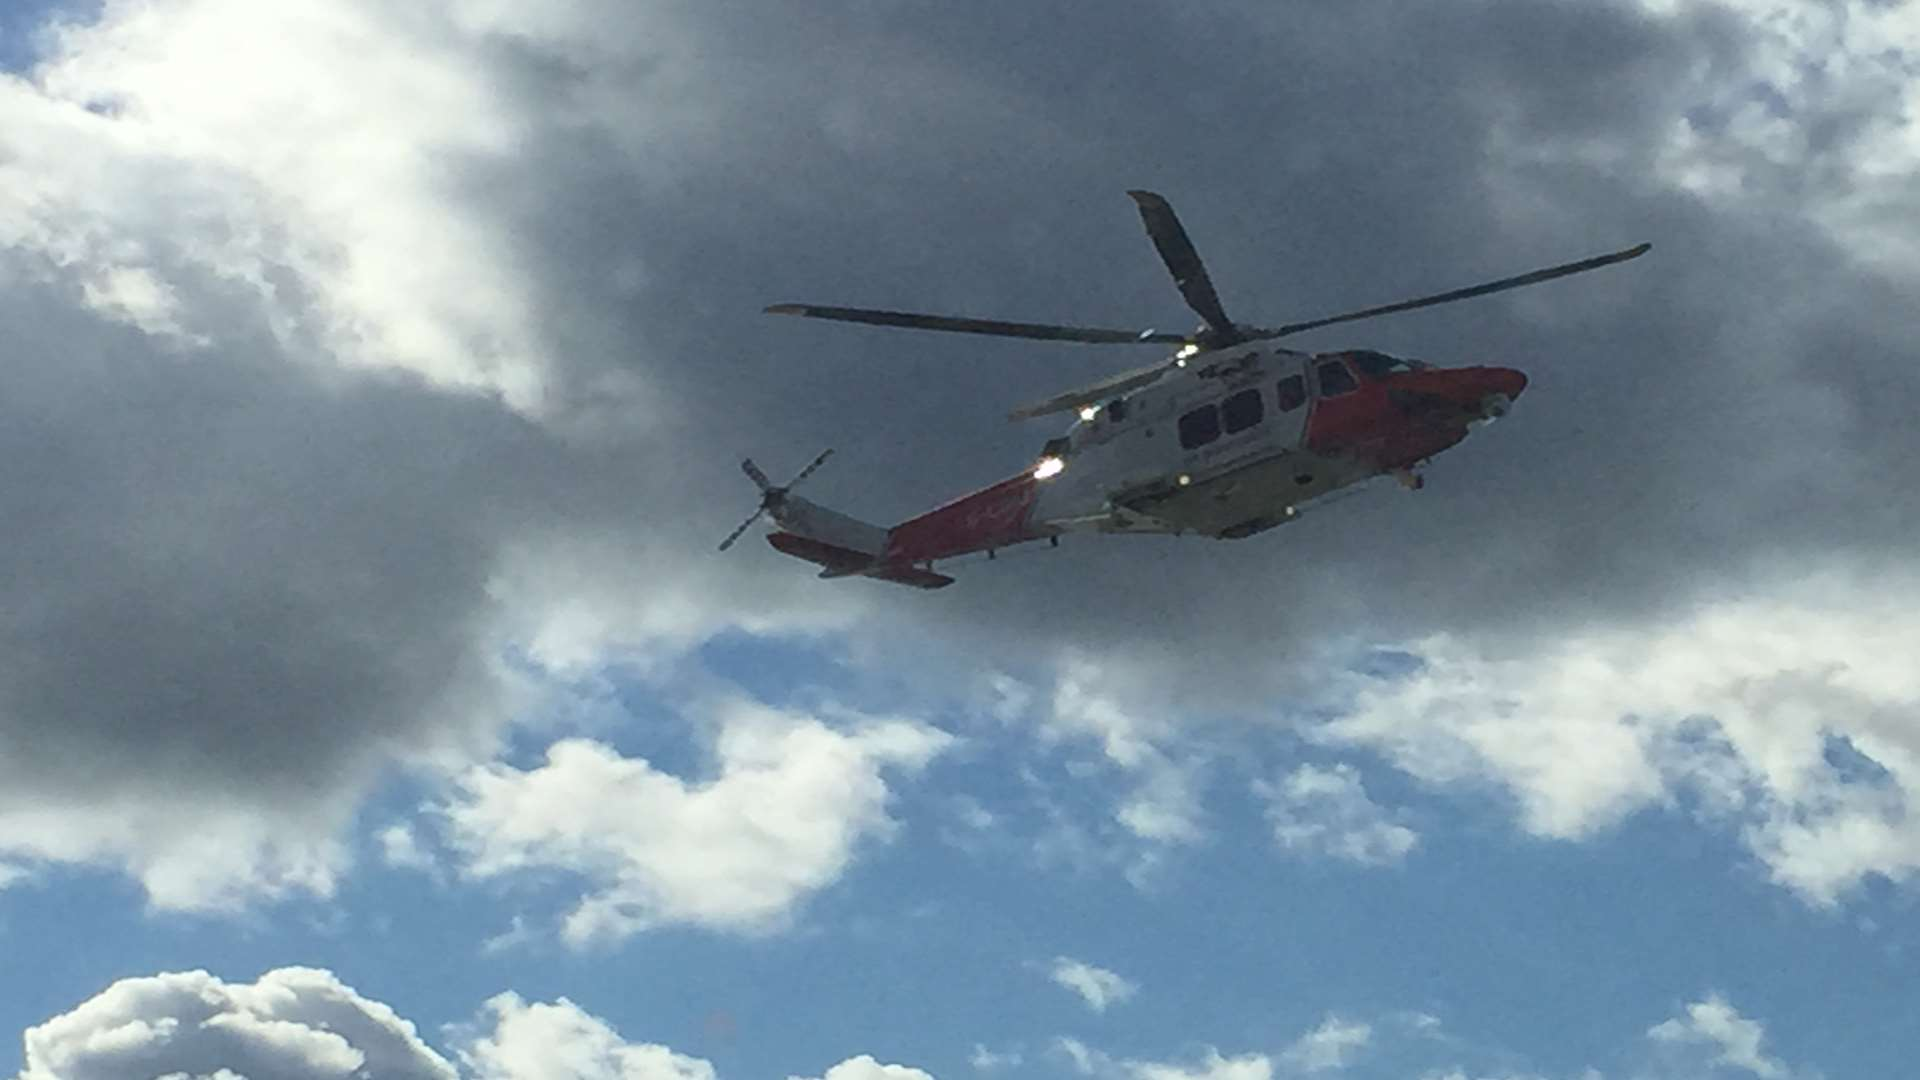 The Coastguard helicopter has been scrambled. Library image.